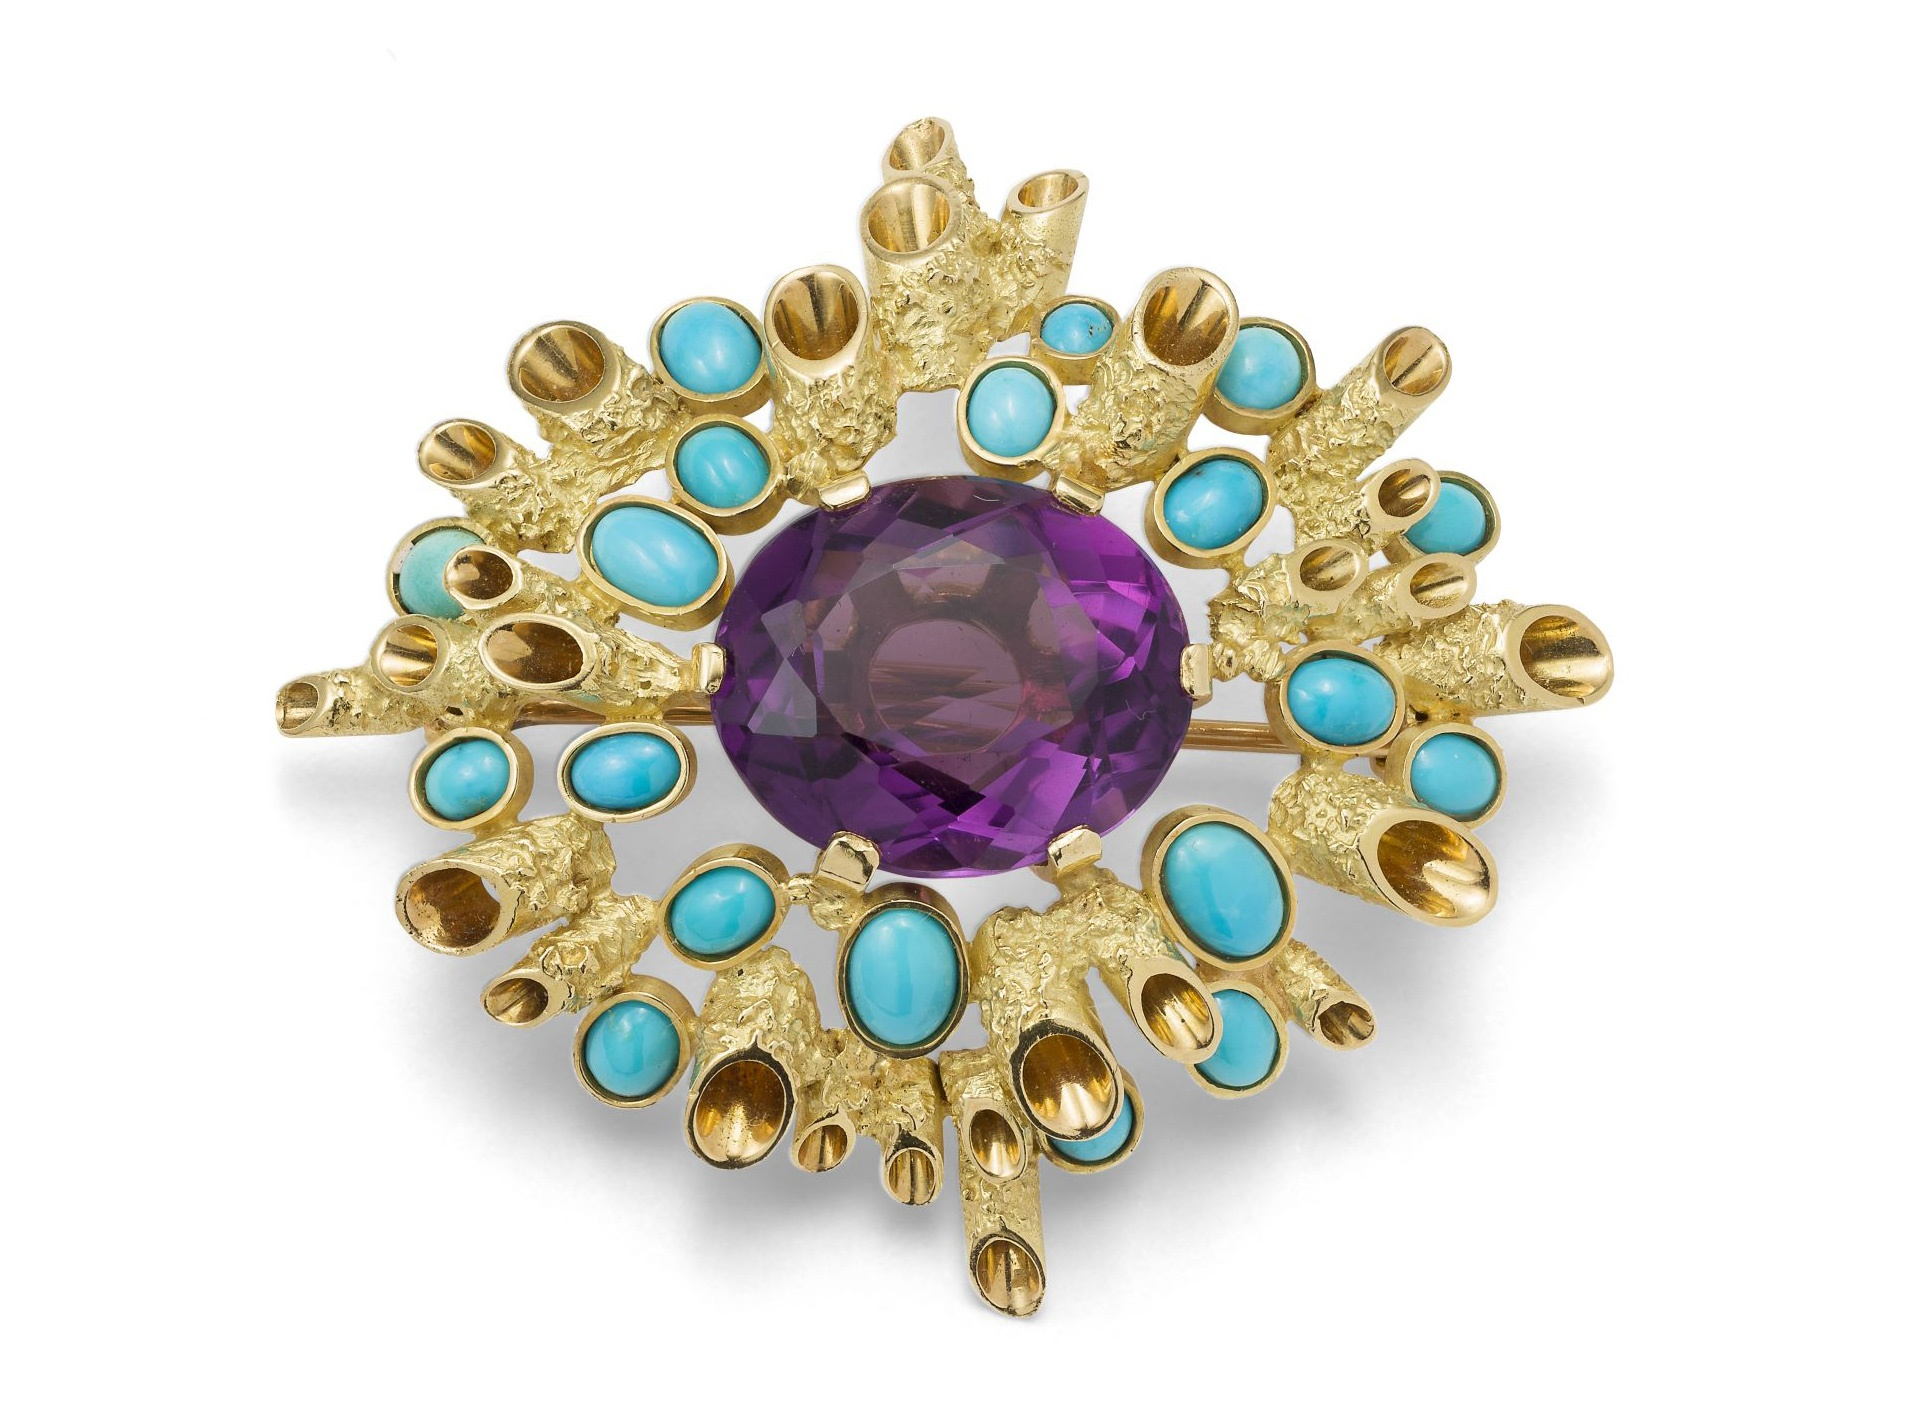 Lot 68 | An amethyst and turquoise brooch, by John Donald, 1965 | The central oval-cut amethyst, within an abstract border of radiating textured round 18ct gold tubes, accented with collet-set cabochon turquoise, UK hallmark, maker's mark JAD, maker's case | Length: 5.0cm | £1,500 - £2,000 + fees